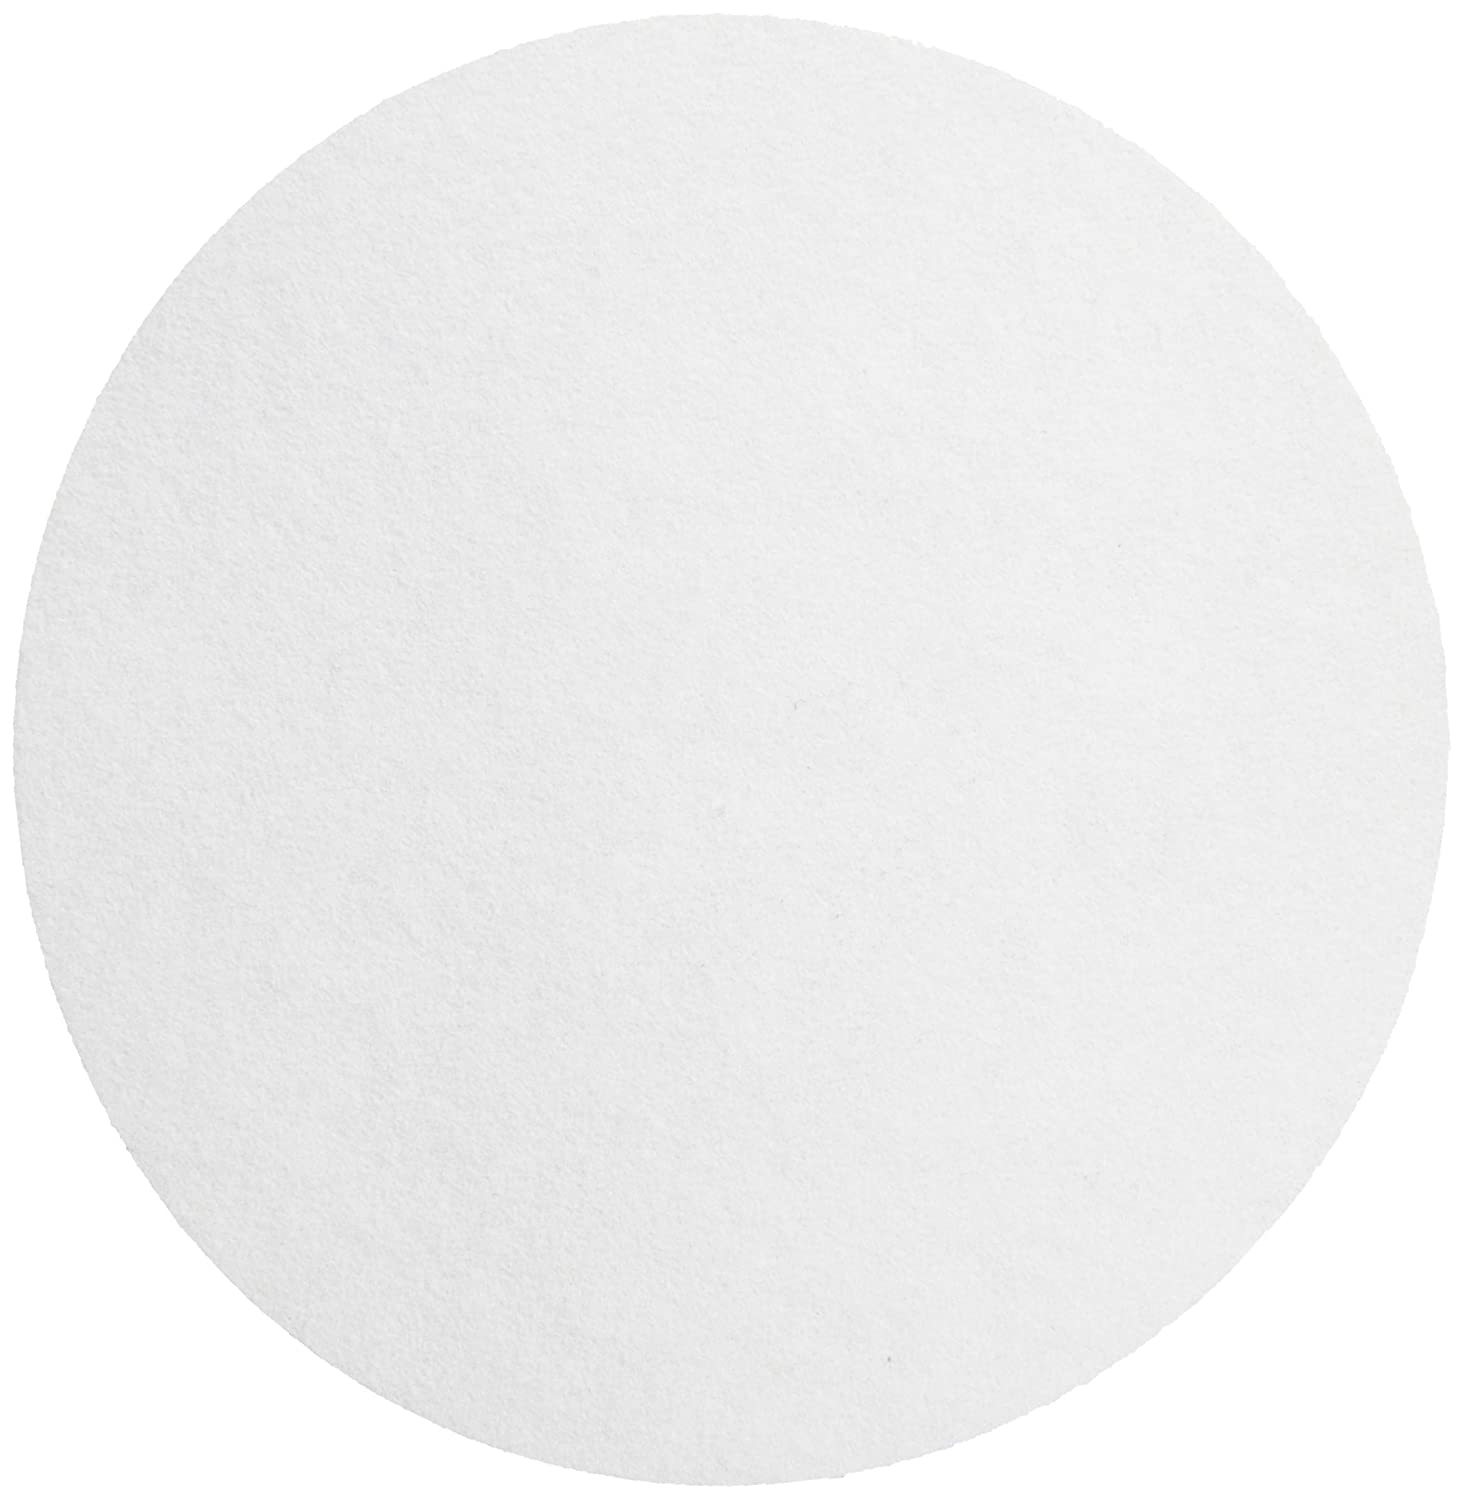 Whatman 1454150 Grade 54 Quantitative Filter Paper, Hardened Low Ash, circle, 150 mm (Pack of 100) GE Healthcare F1252-7